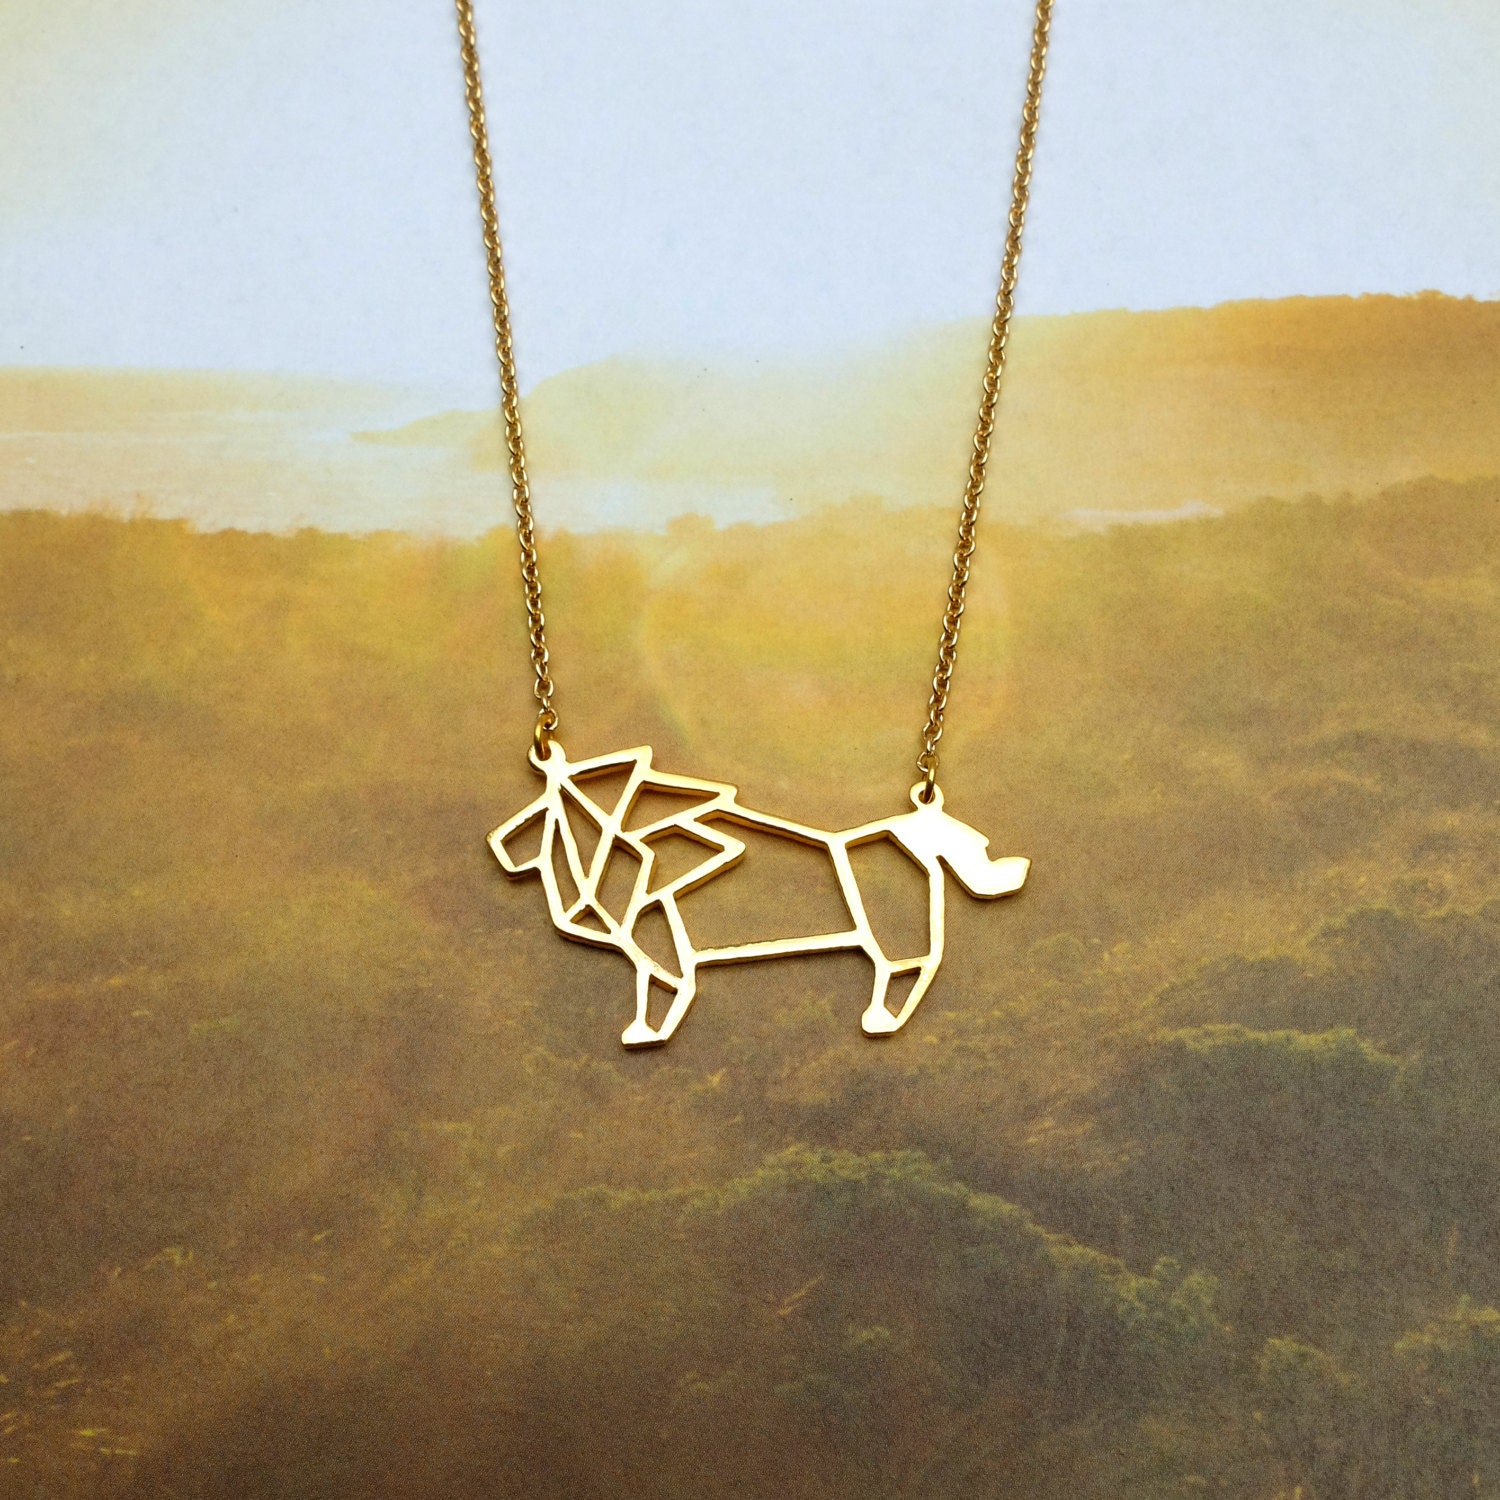 in silver love a itm s animal feeding open girl pendants horse jewelry sterling necklace pendant heart